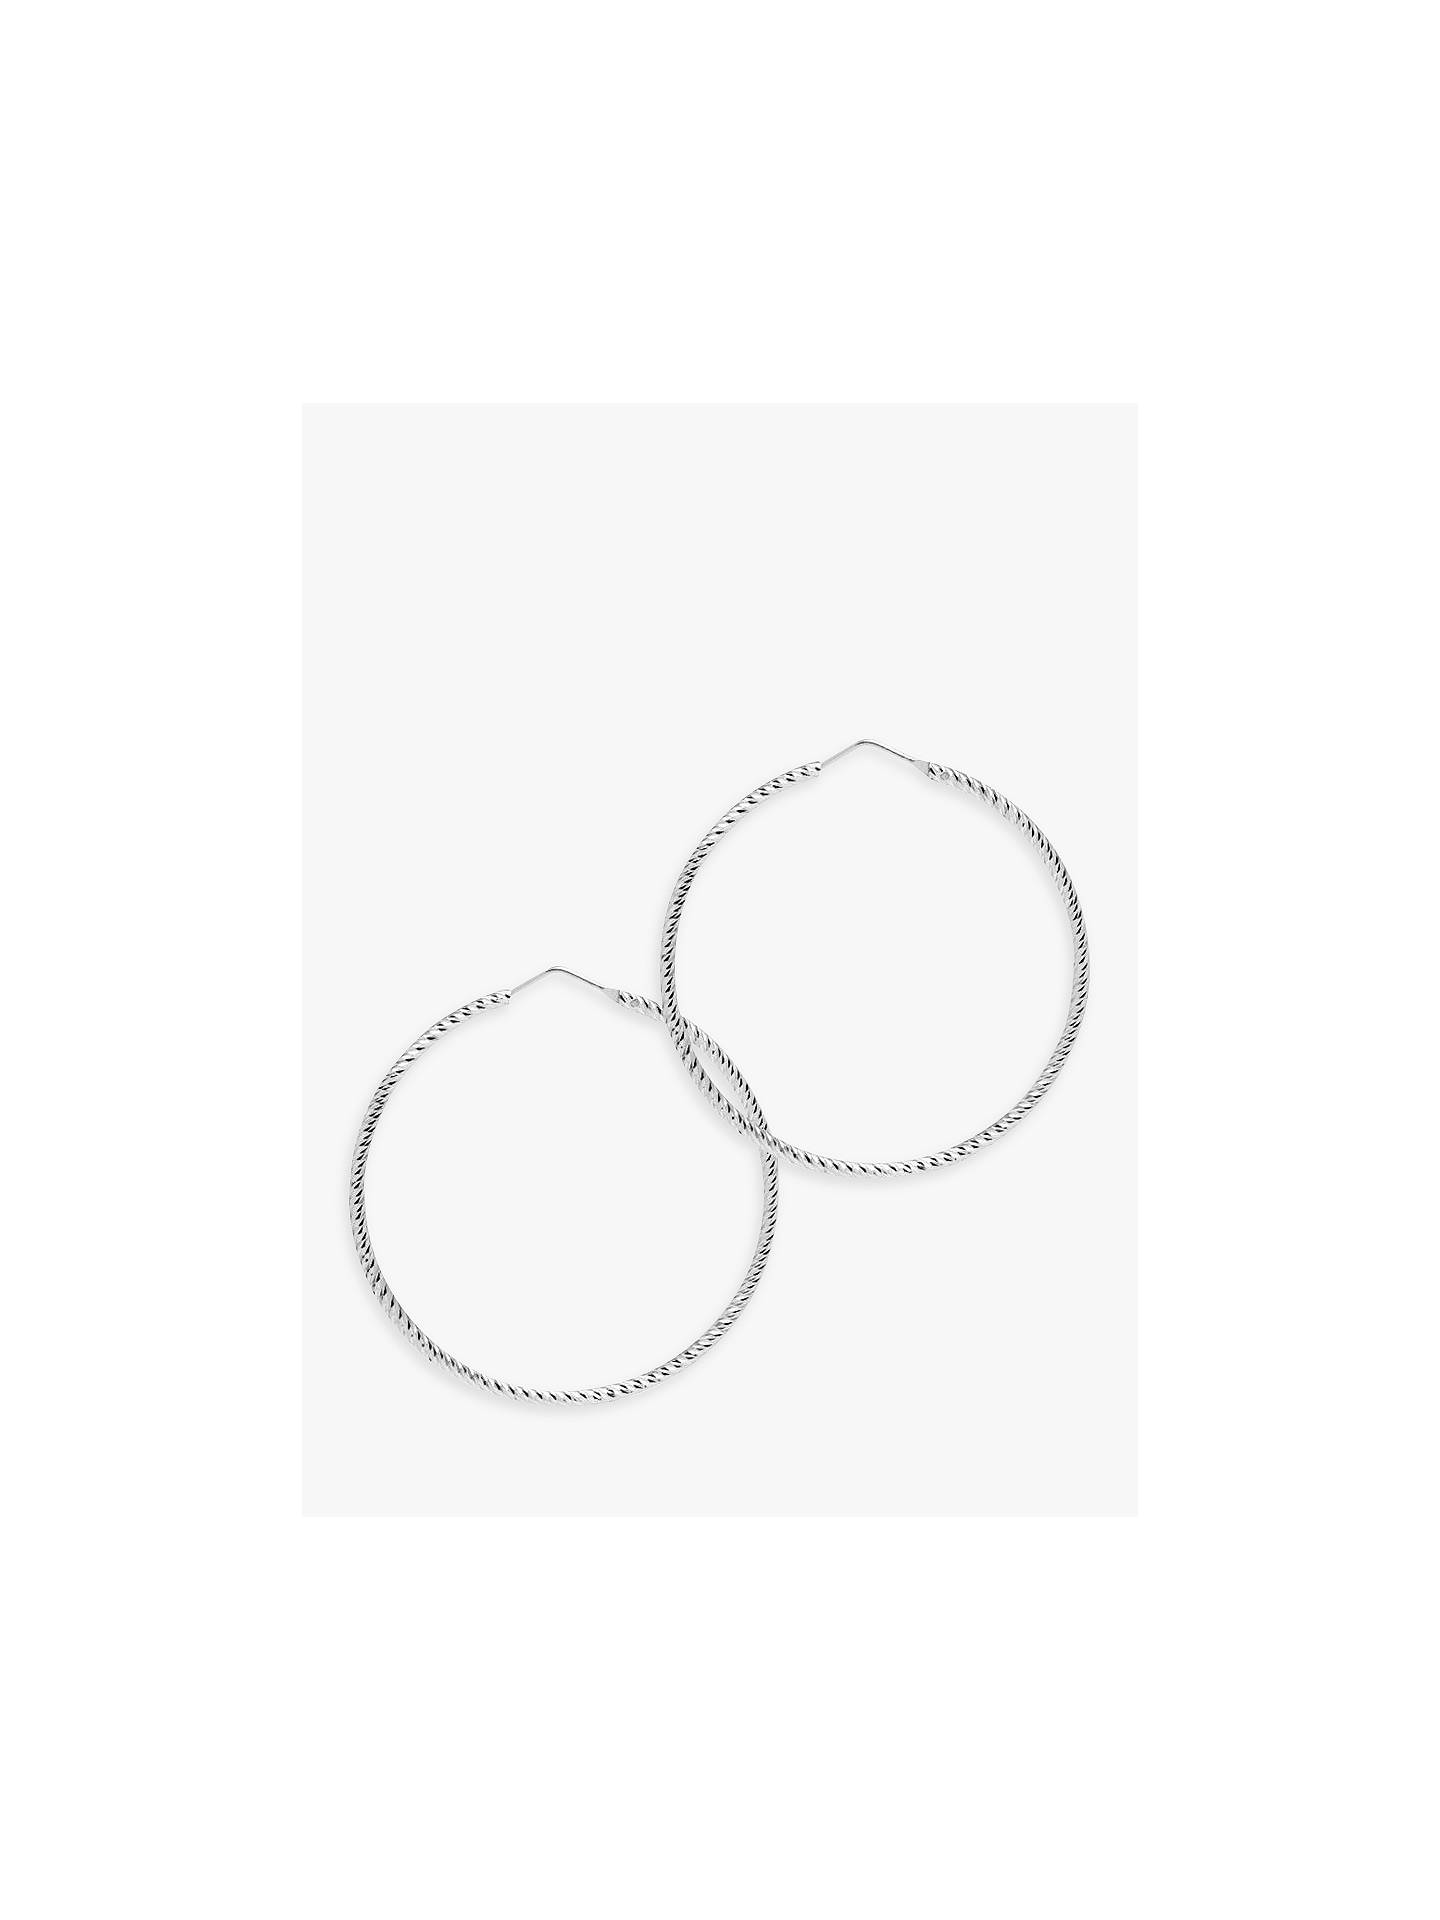 BuyThe Hoop Station La Roma Diamond Cut Sterling Silver Twist Medium Hoop Earrings, Silver Online at johnlewis.com